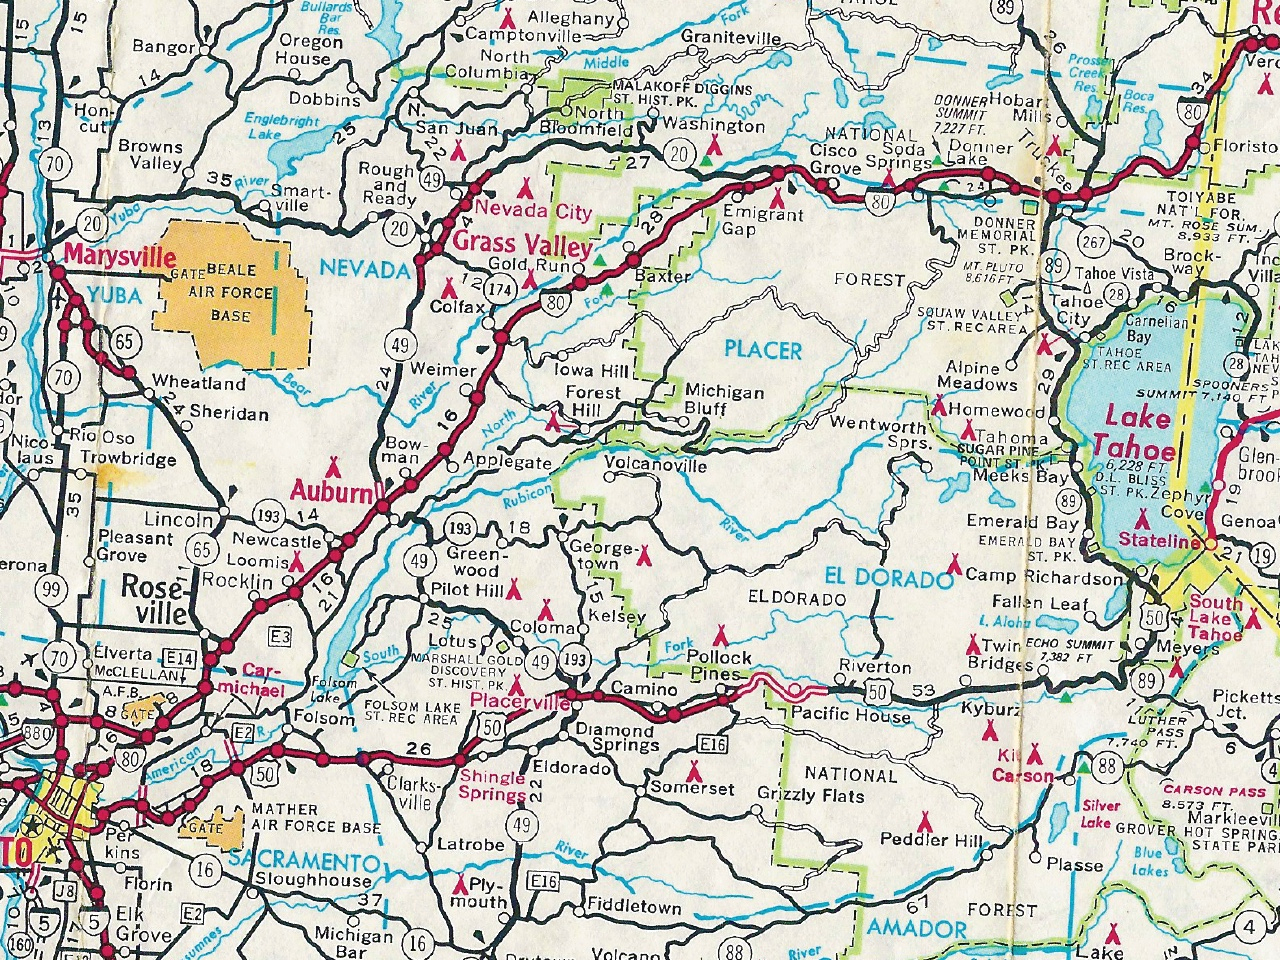 Road Map Northern California - Klipy - Road Map Of Northern California